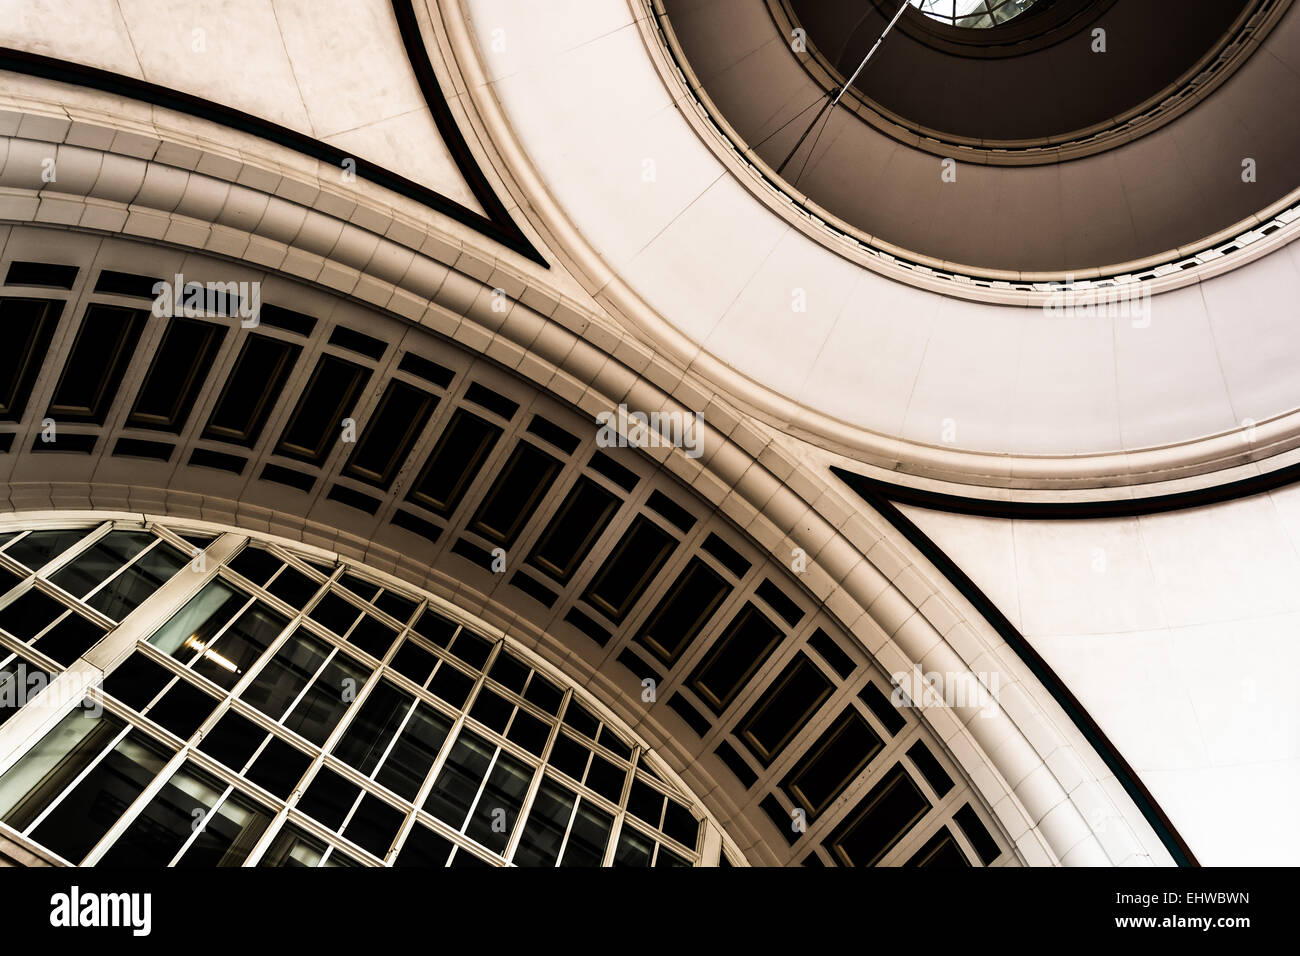 Architecture inside Rowes Wharf, in Boston, Massachusetts. - Stock Image